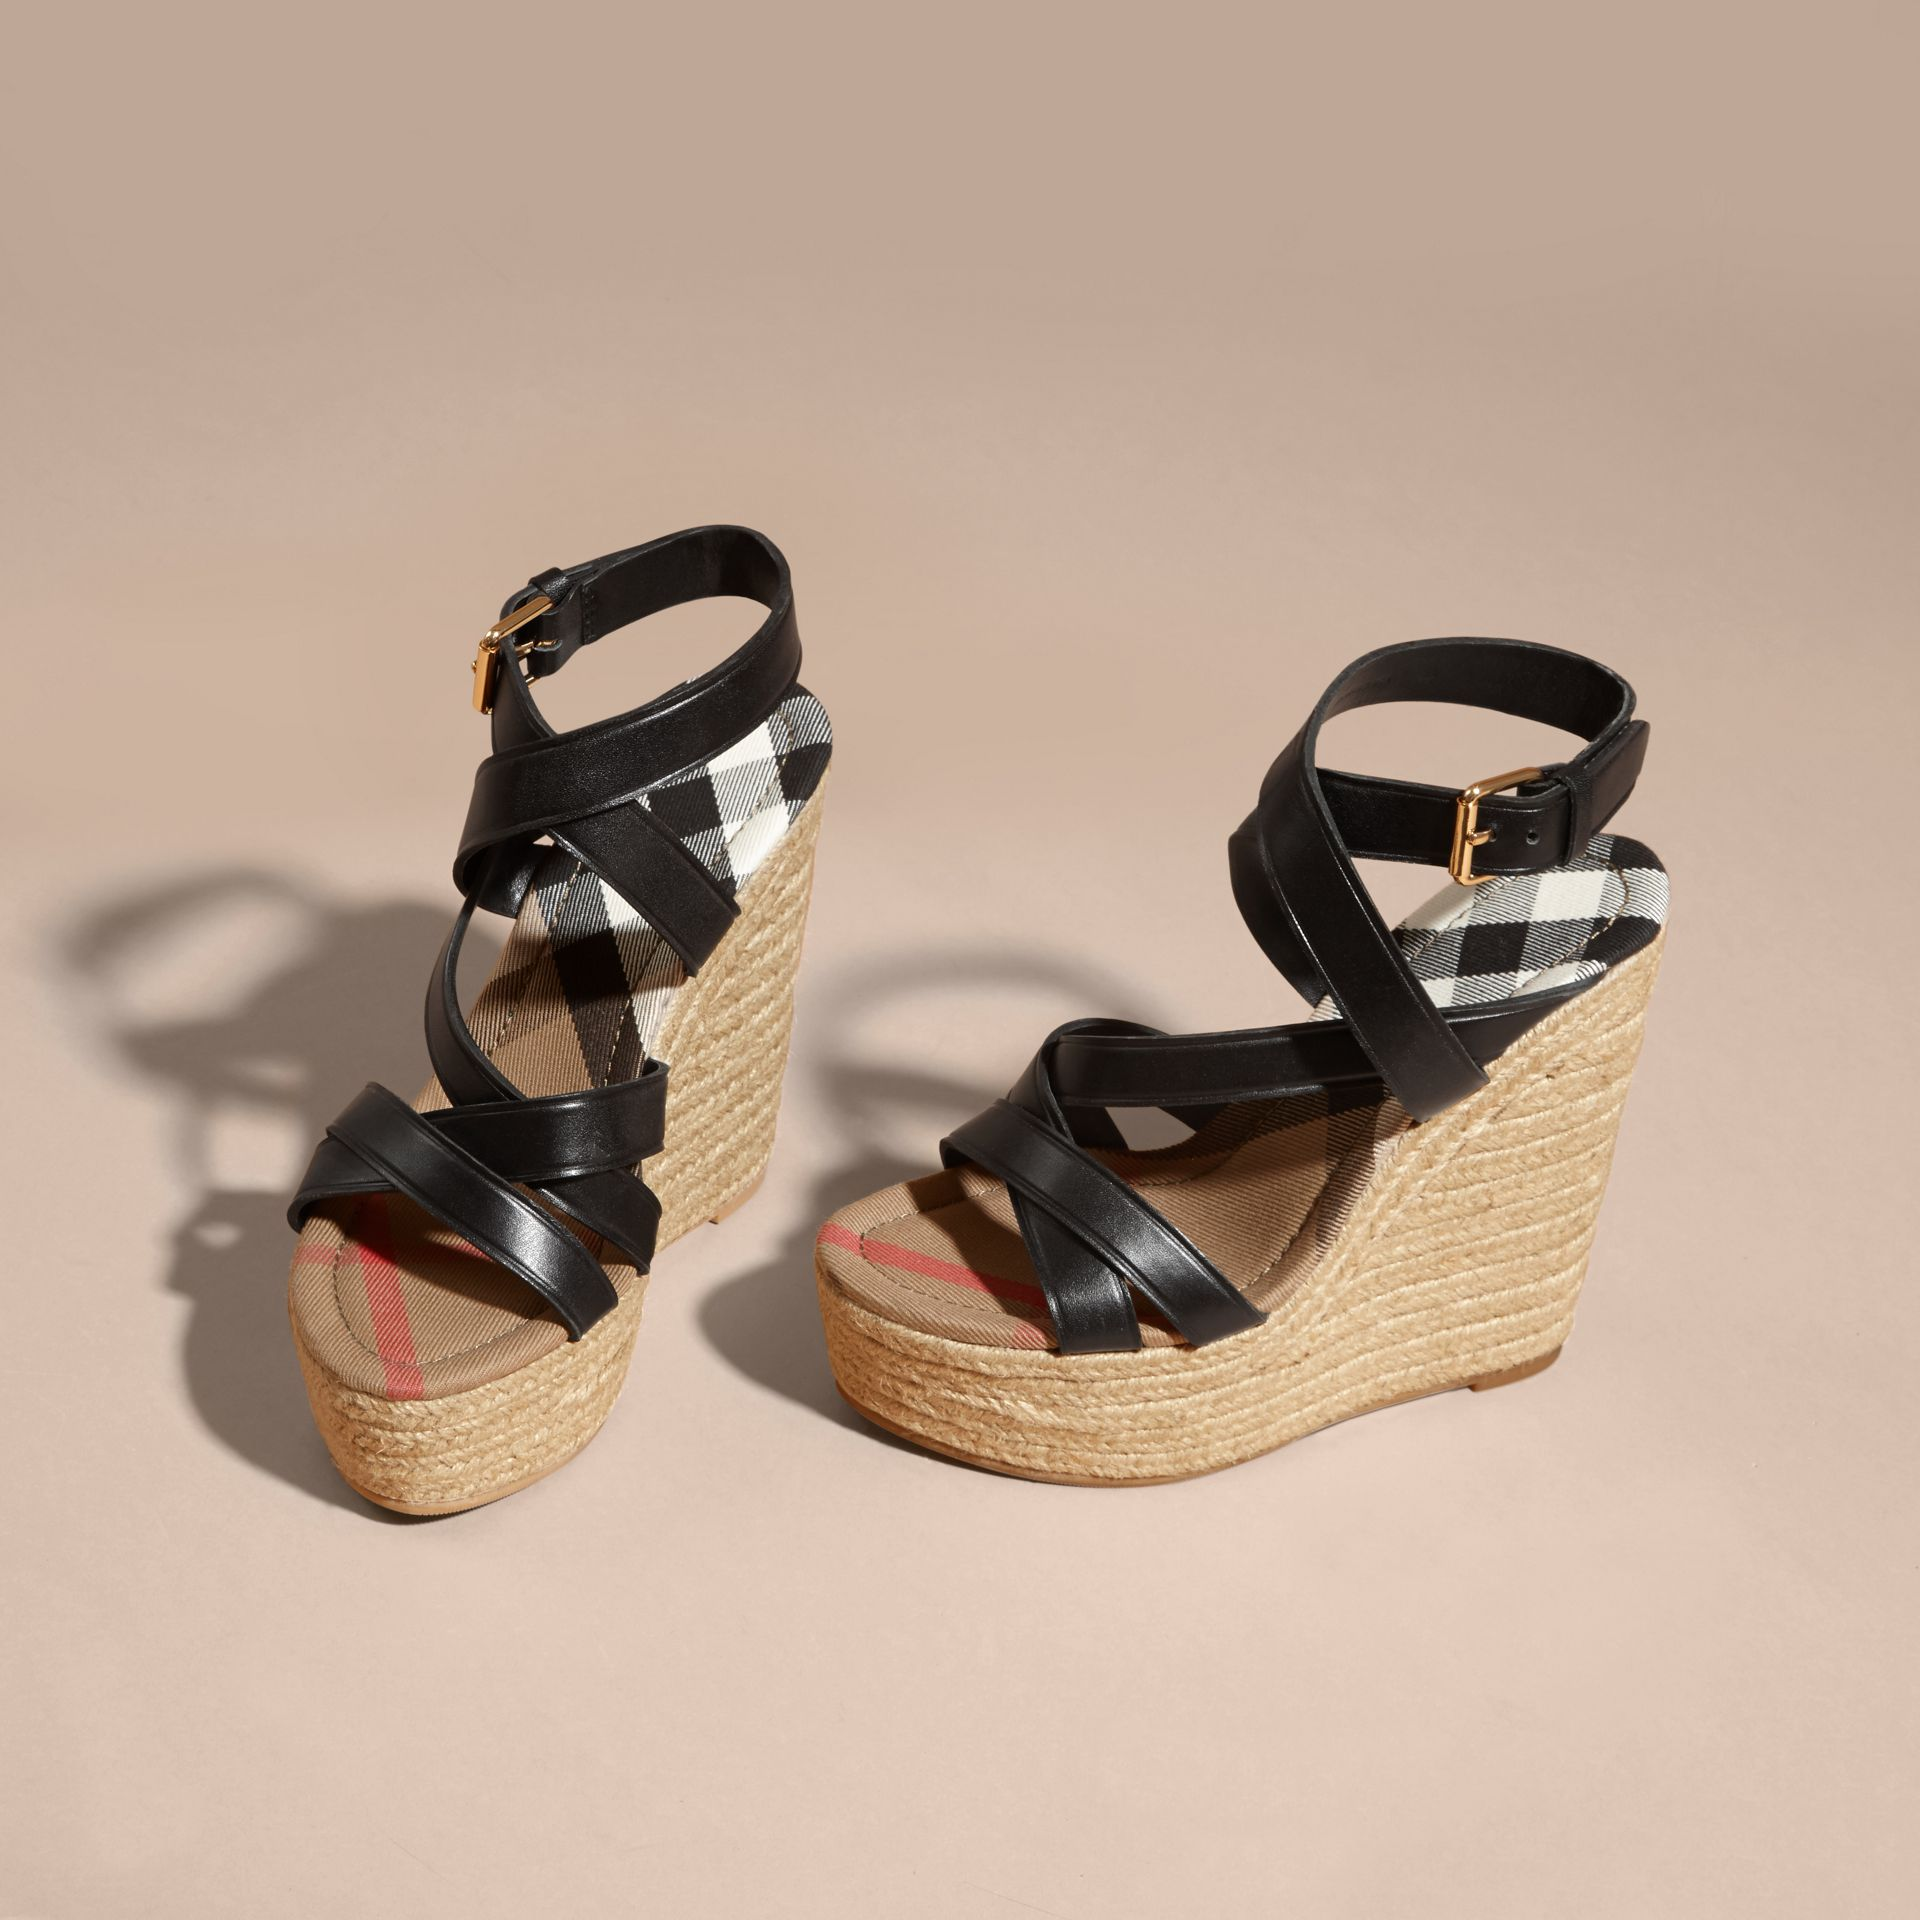 Leather Platform Espadrille Wedge Sandals in Black - Women | Burberry Canada - gallery image 4